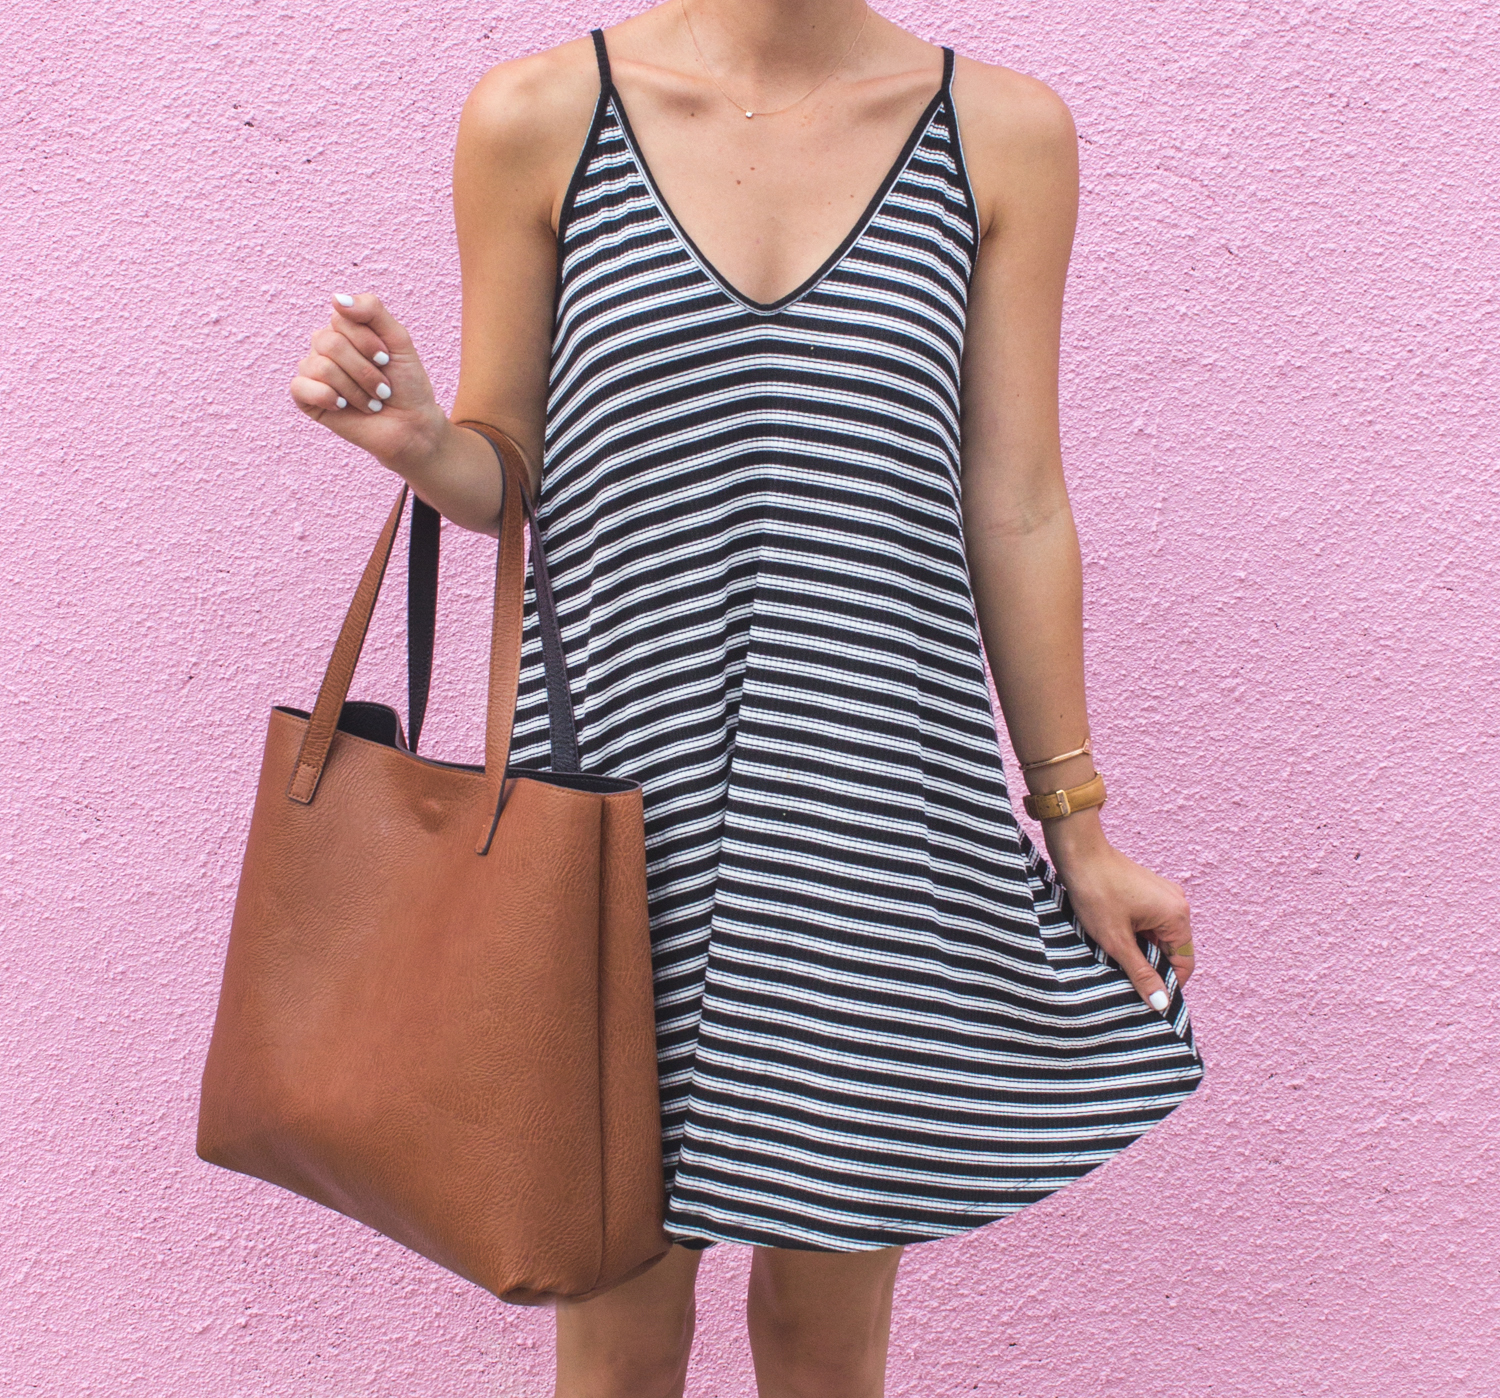 livvyland-blog-olivia-watson-austin-texas-fashion-blogger-pink-wall-coffee-run-summer-lace-up-back-striped-sun-dress-vans-sneakers-4